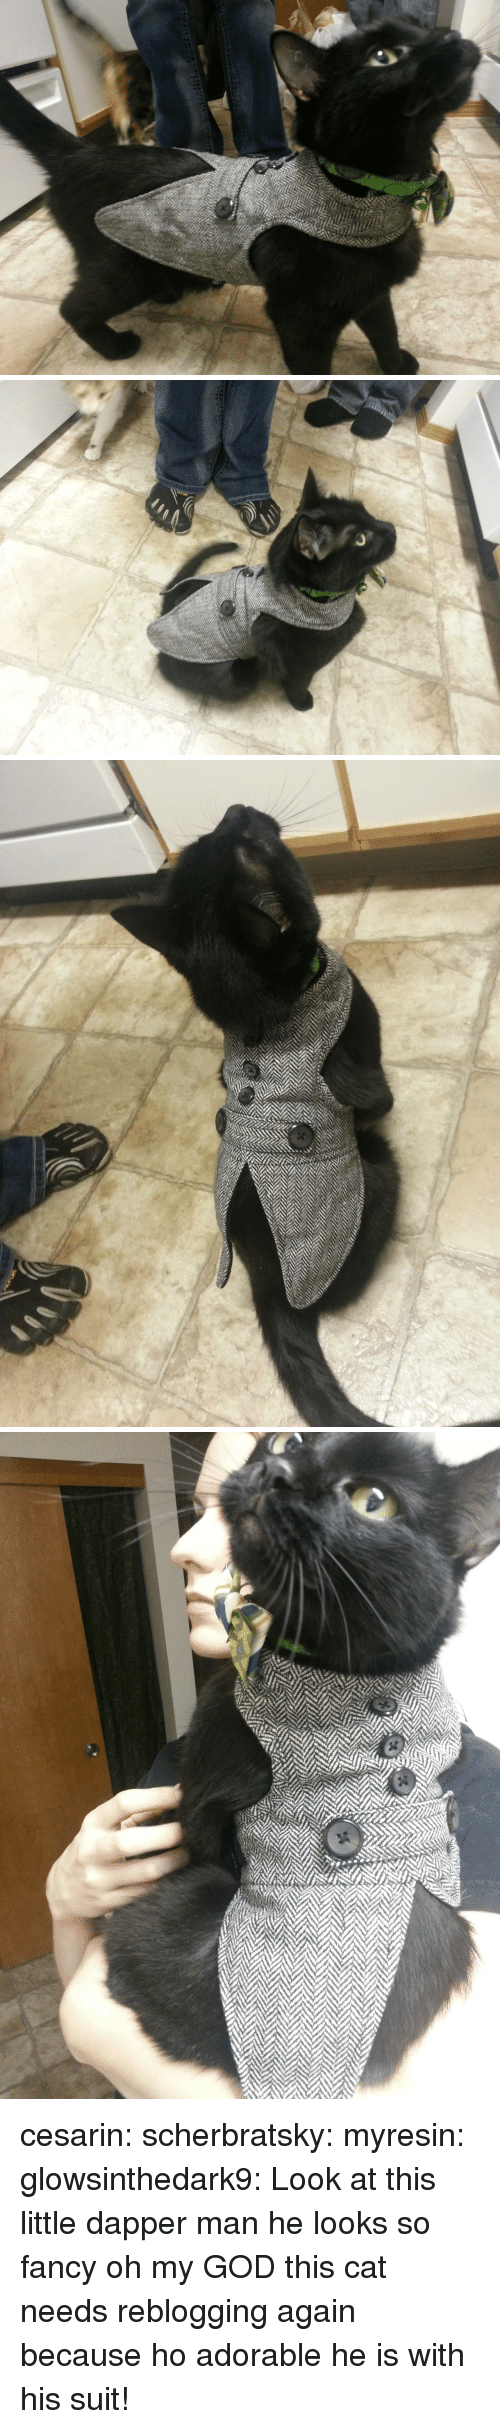 dapper: cesarin: scherbratsky:  myresin:  glowsinthedark9:  Look at this little dapper man  he looks so fancy  oh my GOD  this cat needs reblogging again because ho adorable he is with his suit!